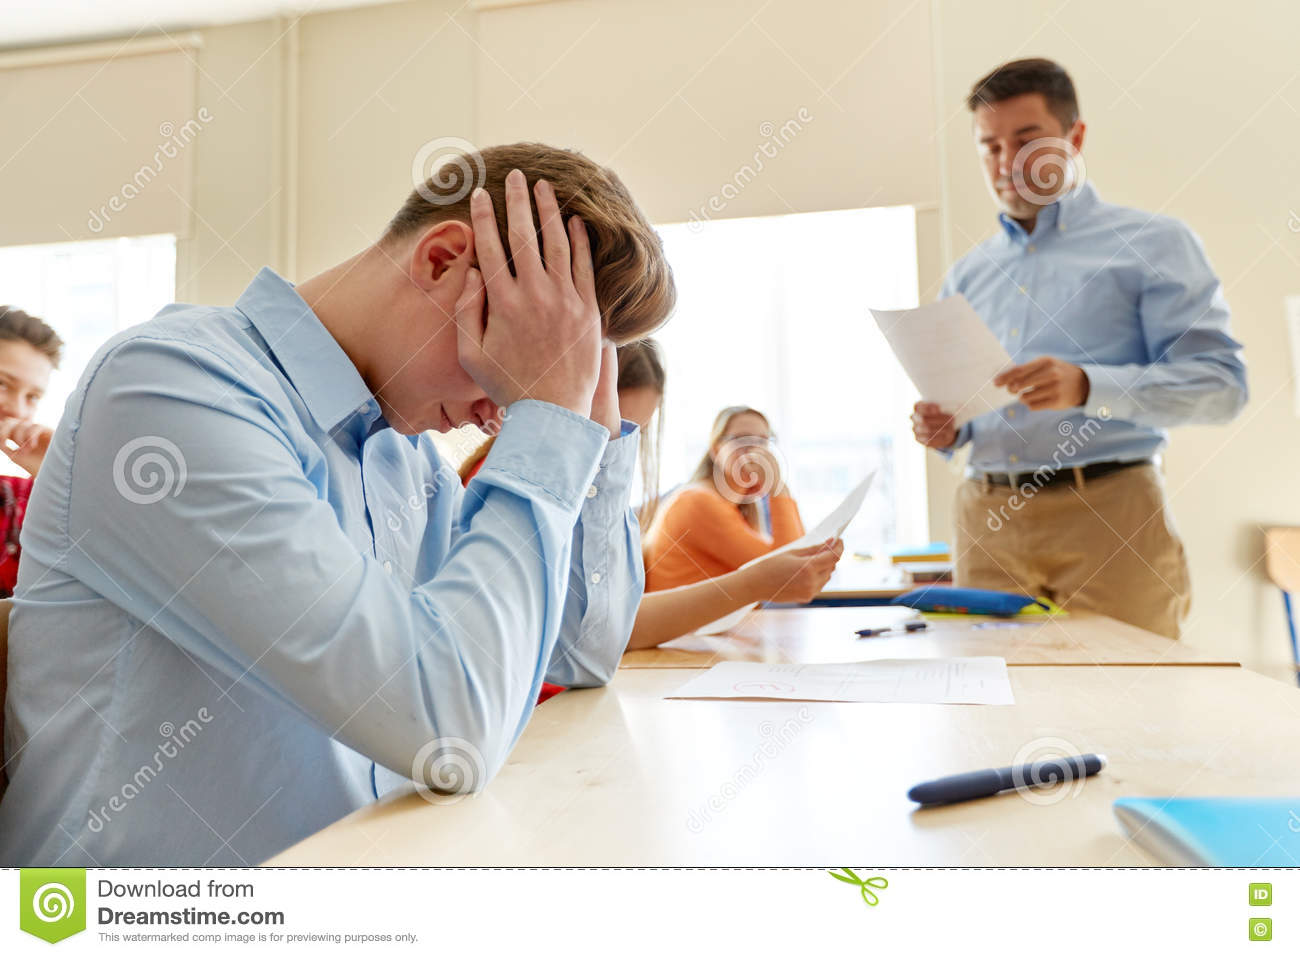 Teacher giving test results to group of students